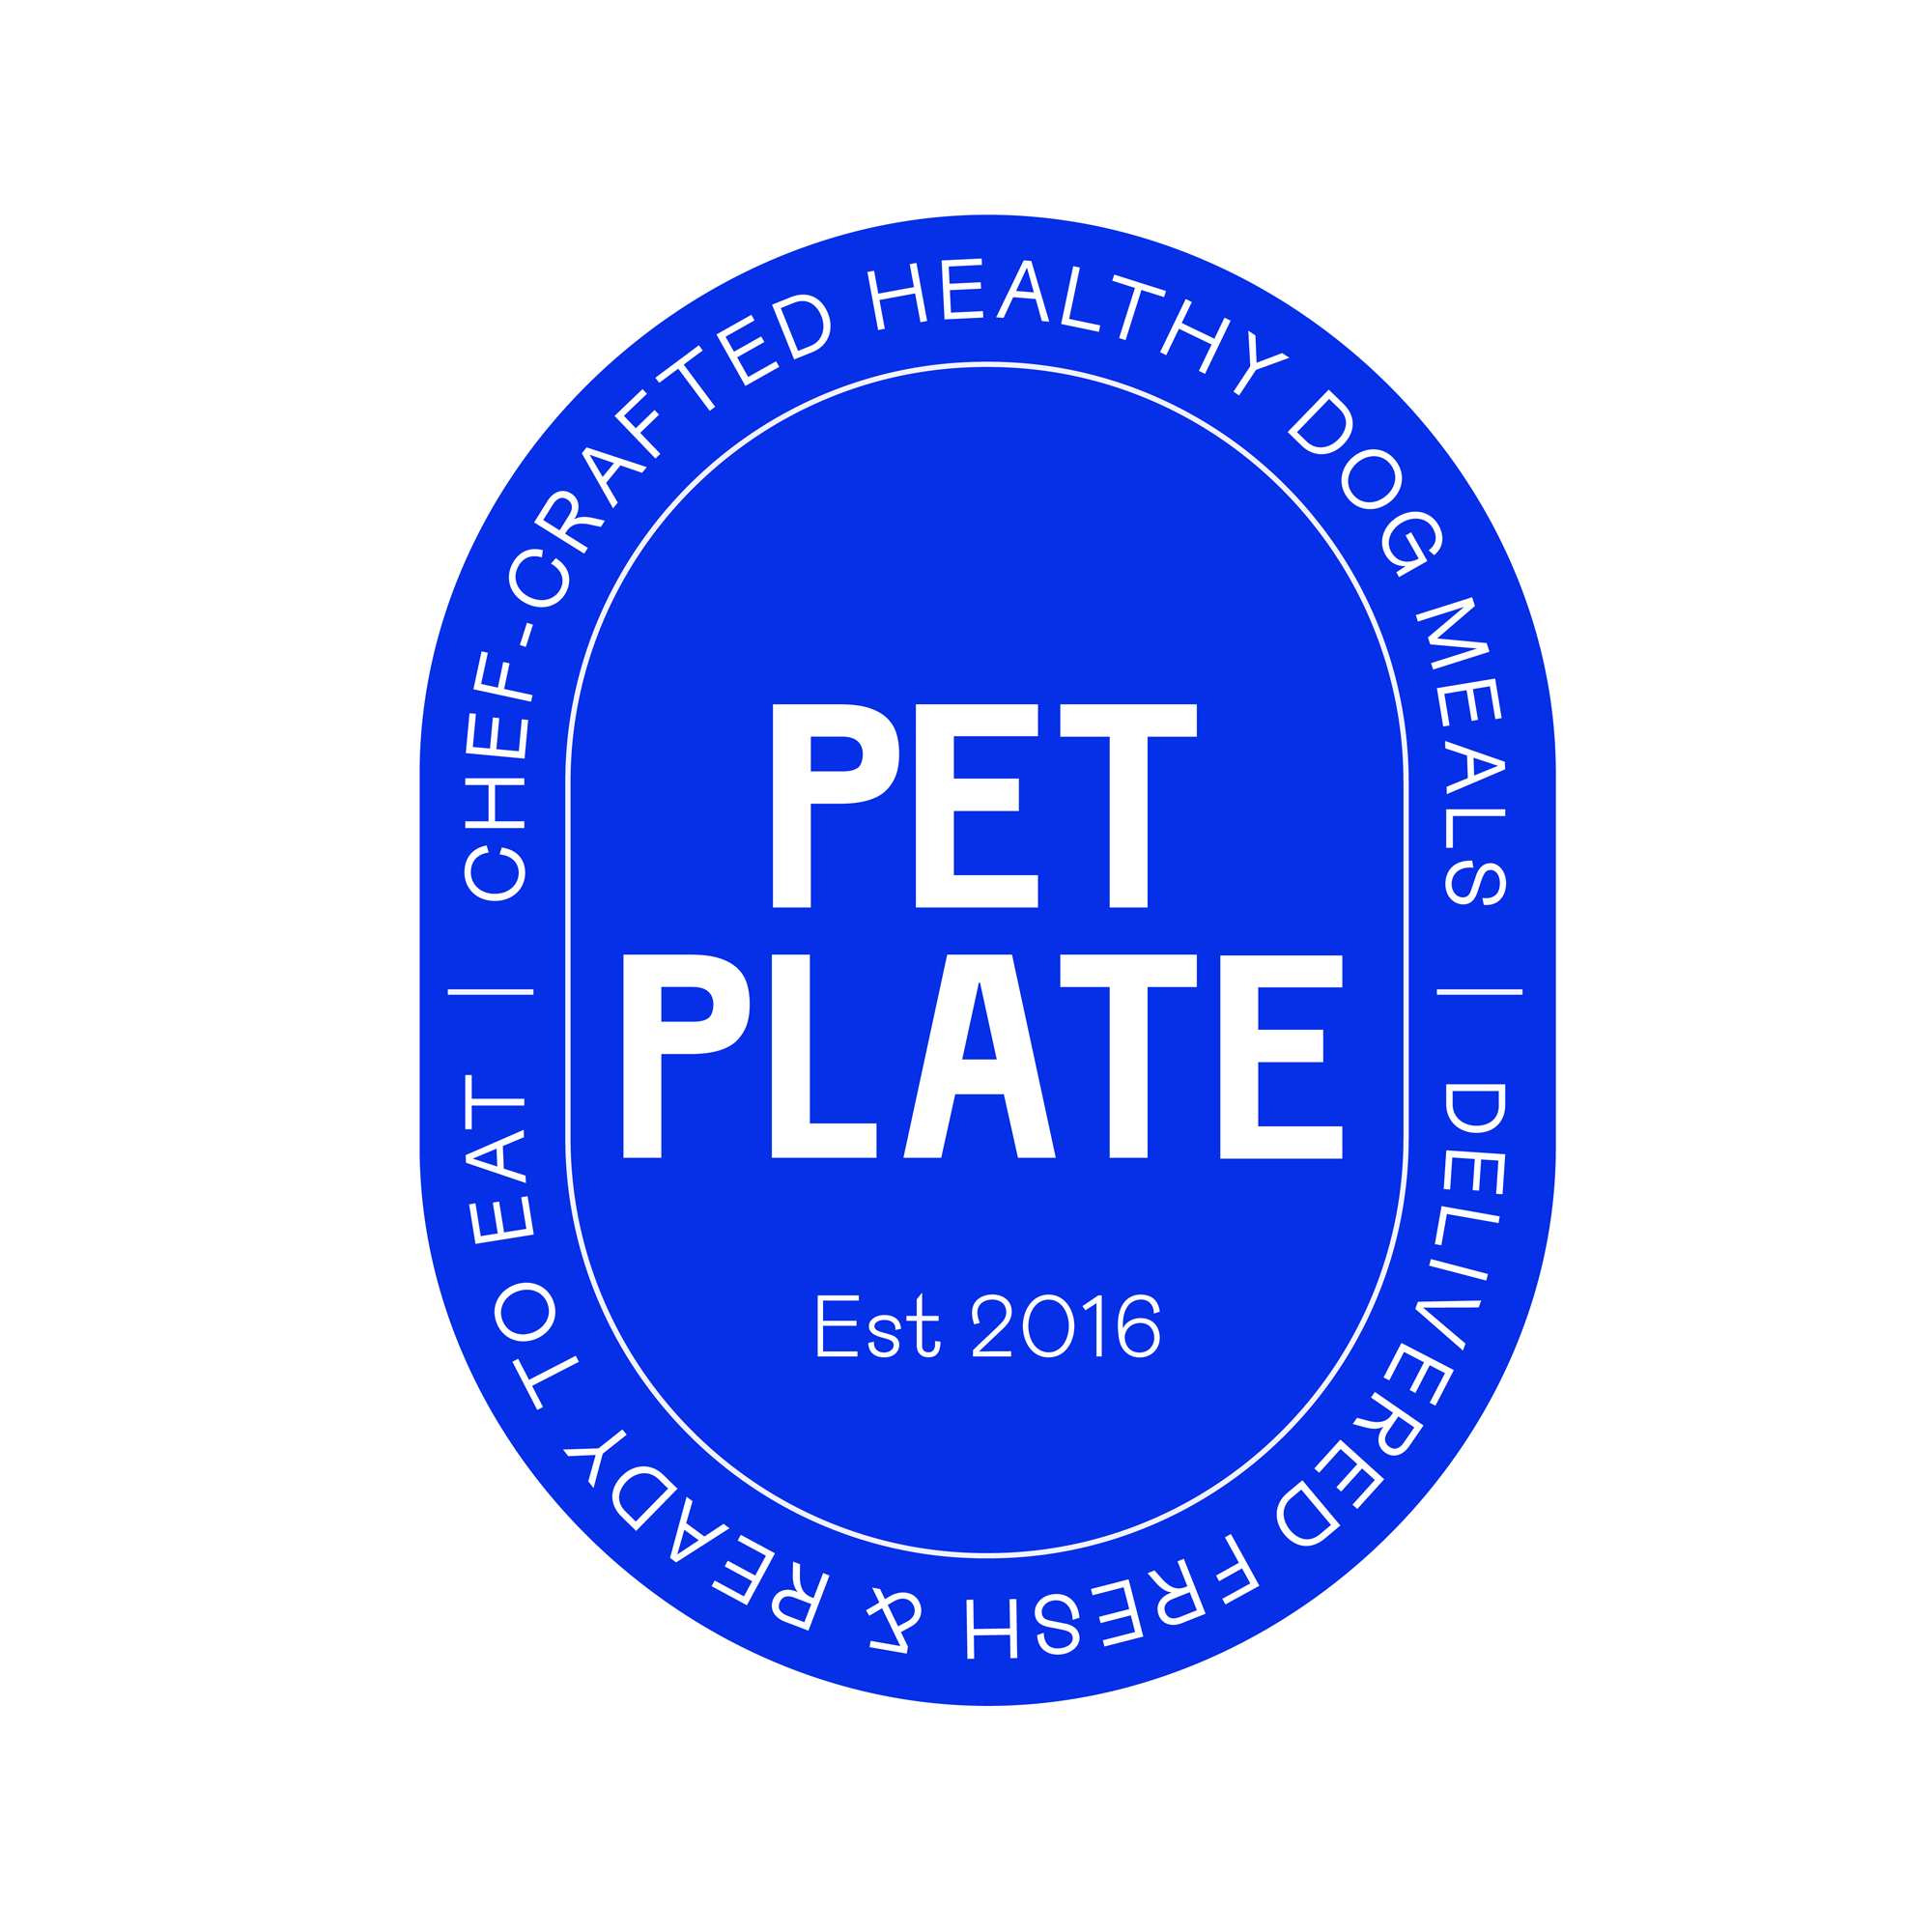 New Logo and Identity for Pet Plate by Sagmeister & Walsh and In-house